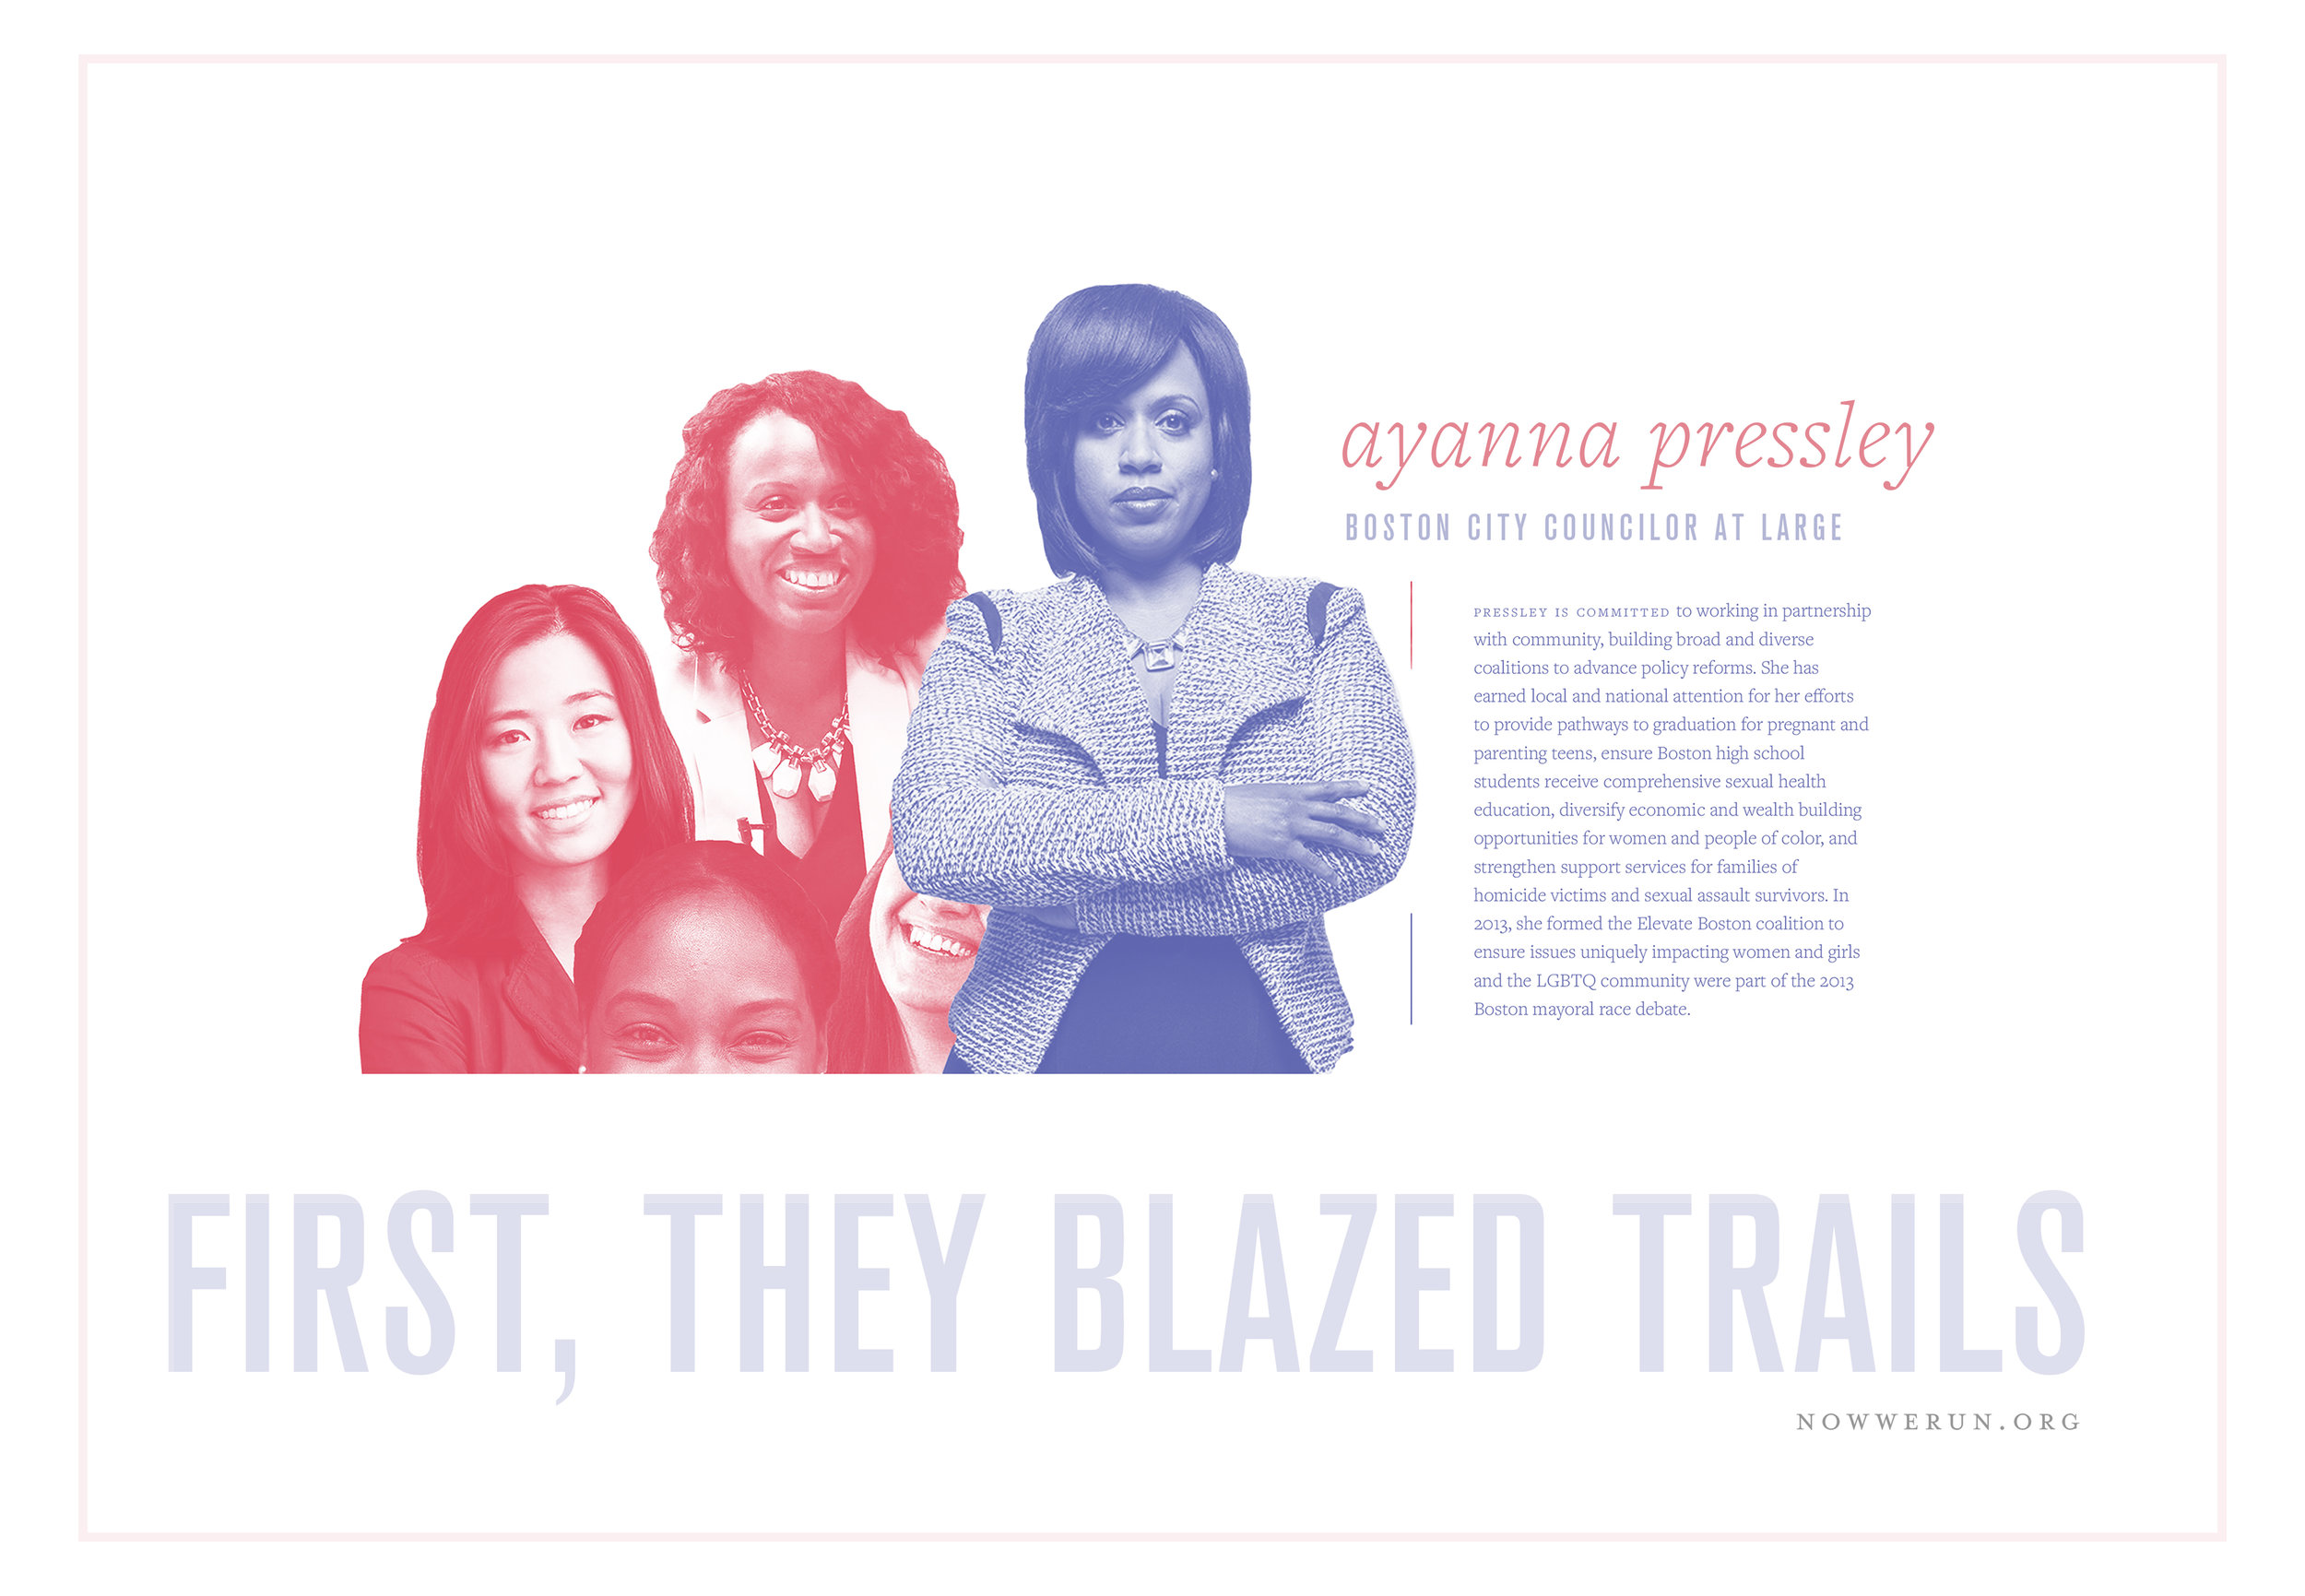 My solution? - Empower women to be their own representation.At the time of the project's completion, Ayanna Pressley was serving as Boston's City Councilor at Large. She is now representing Massachusetts in Congress.